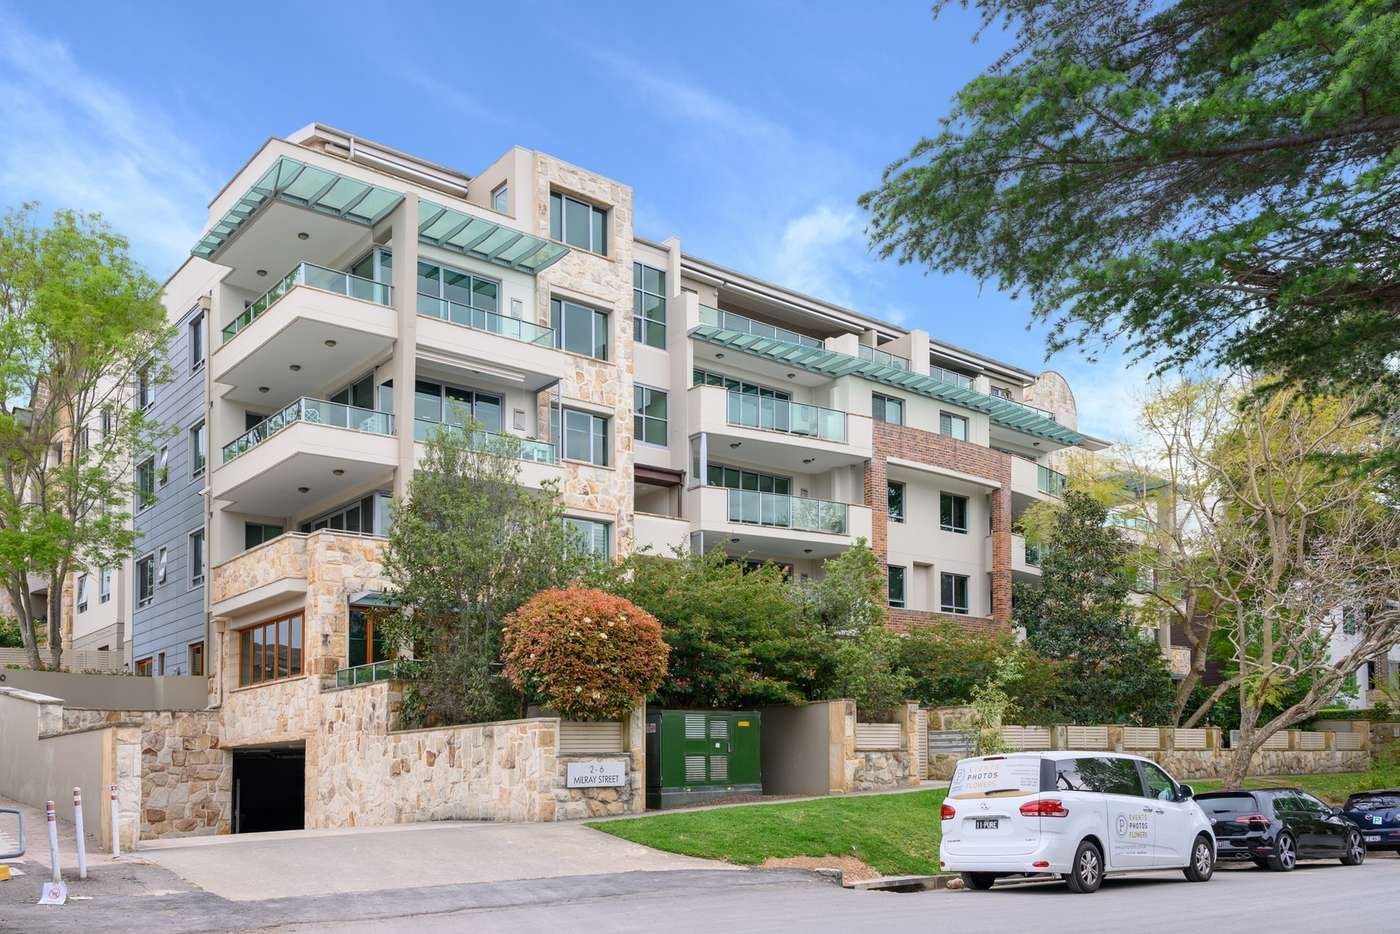 Main view of Homely apartment listing, 11/2-6 Milray Street, Lindfield NSW 2070